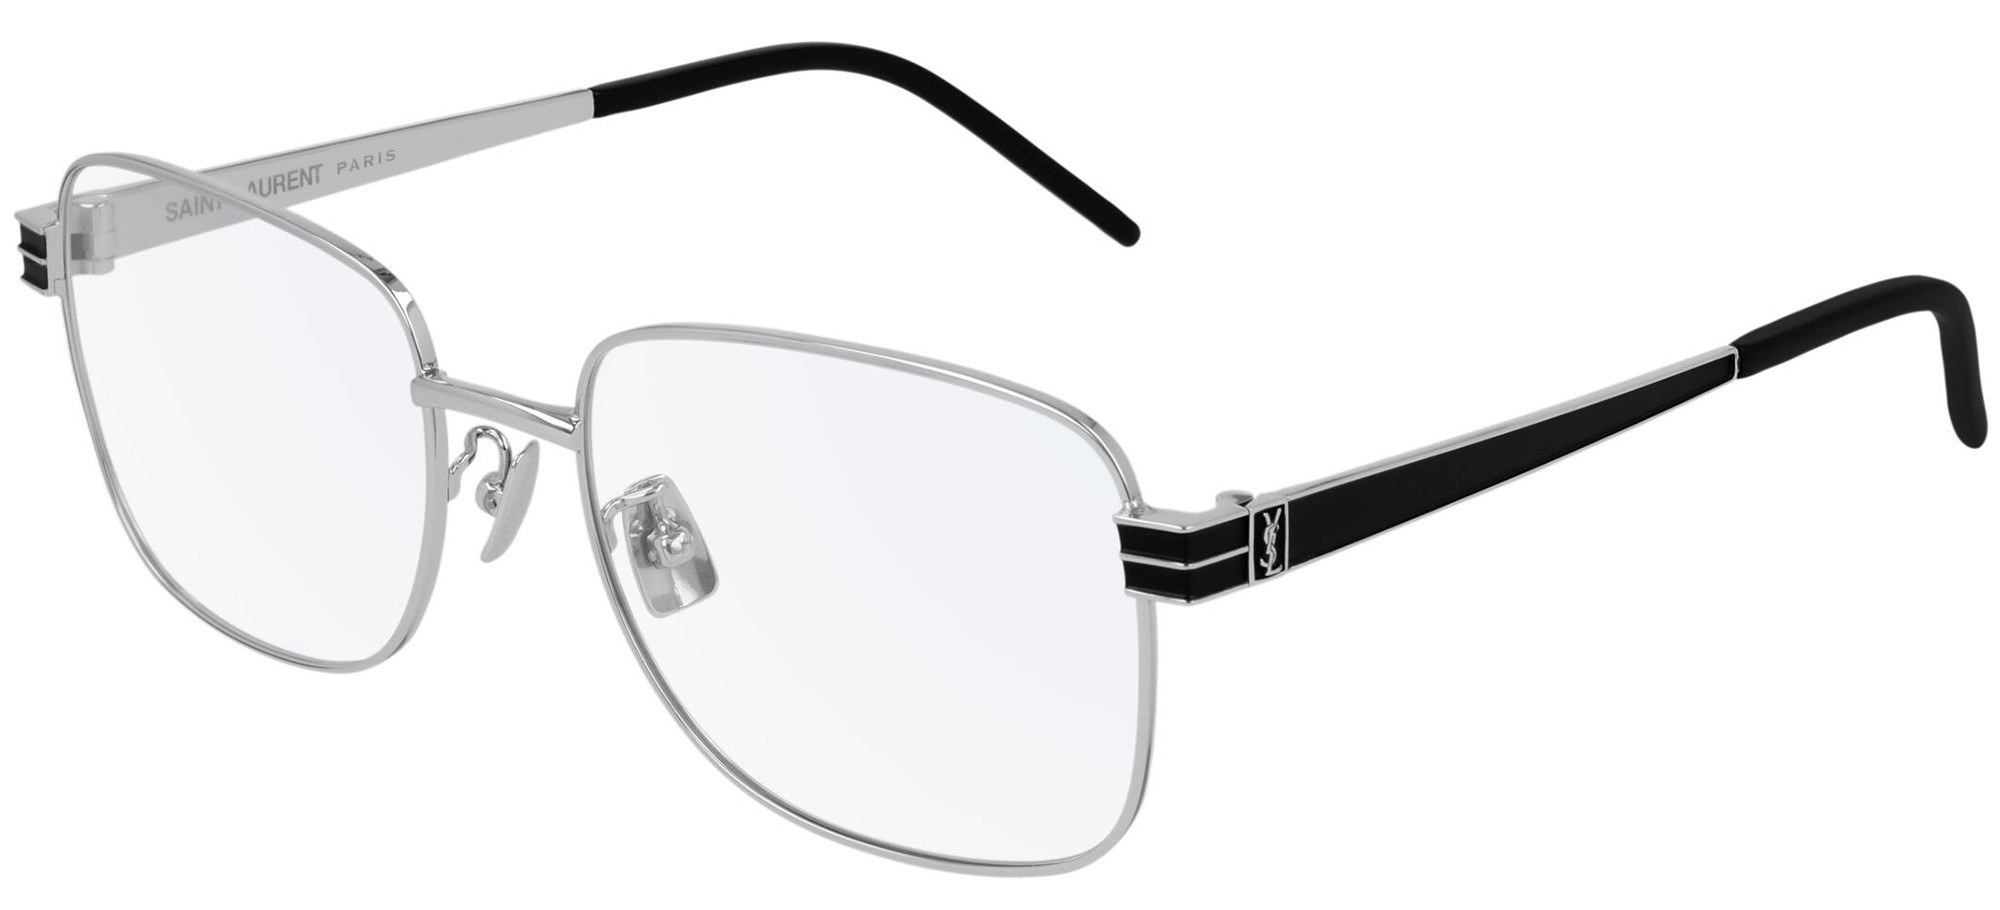 Saint Laurent eyeglasses SL M56